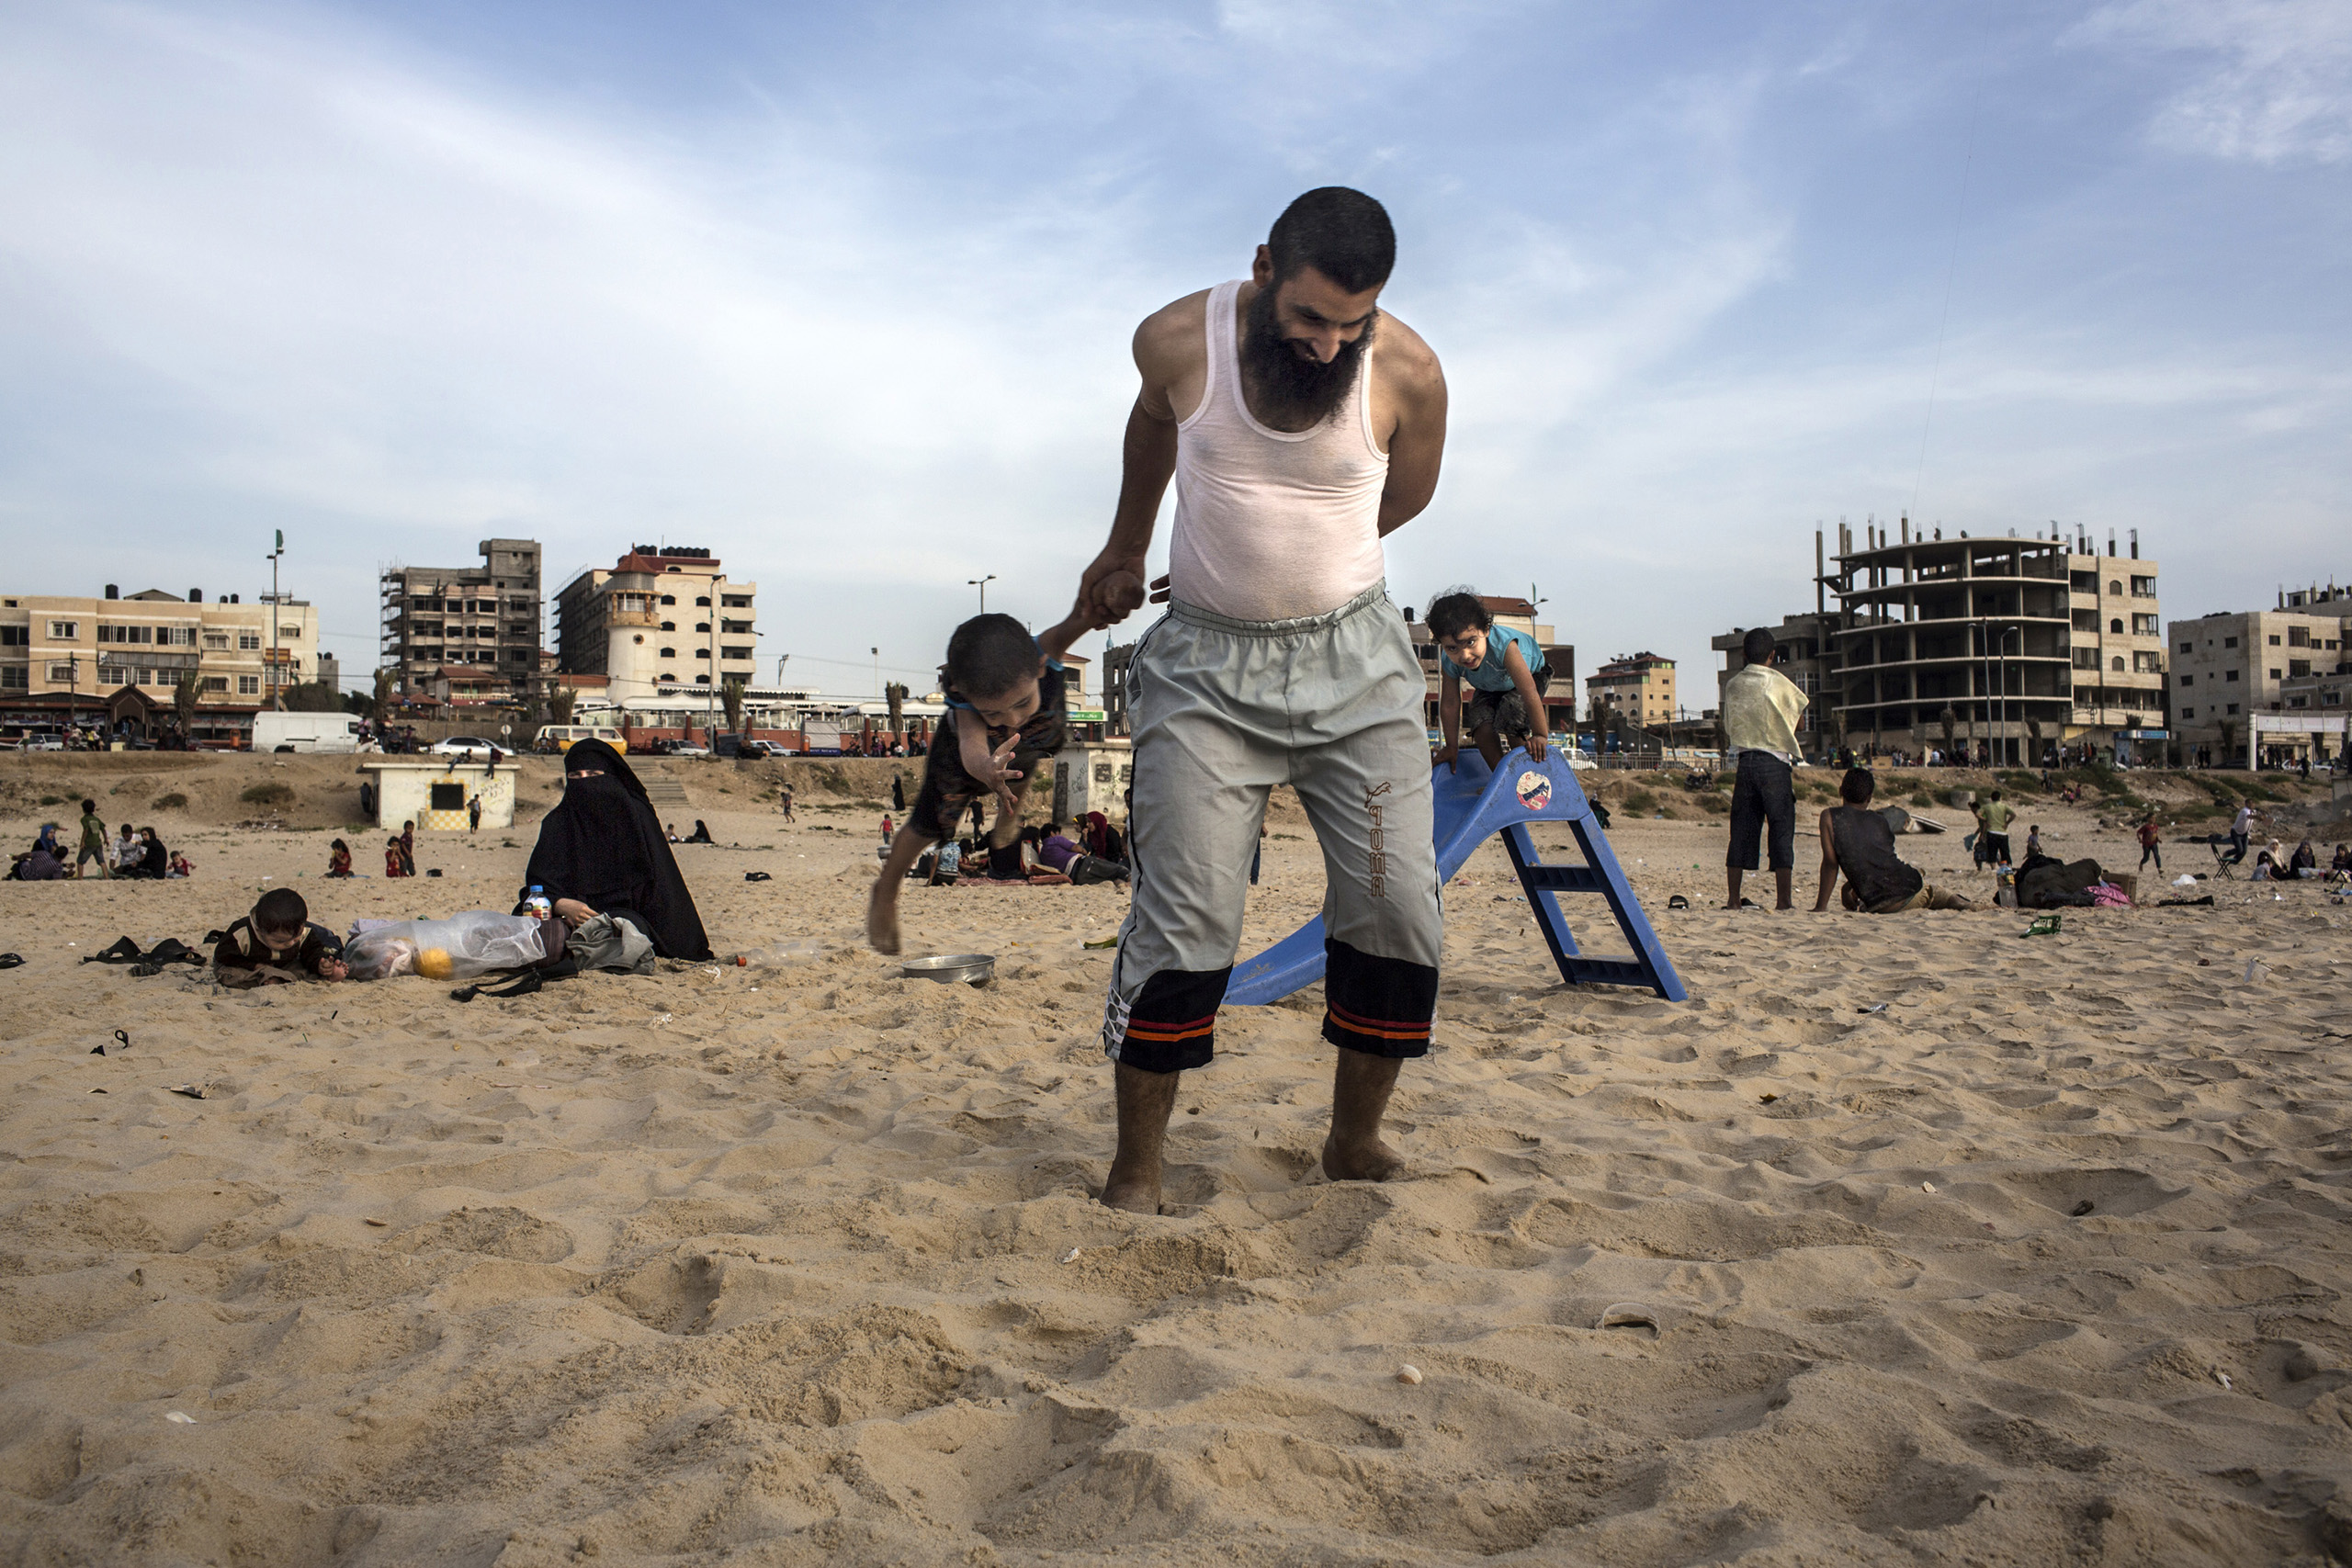 A father plays with his son at the beach, a typical scene on Friday afternoons in Gaza.